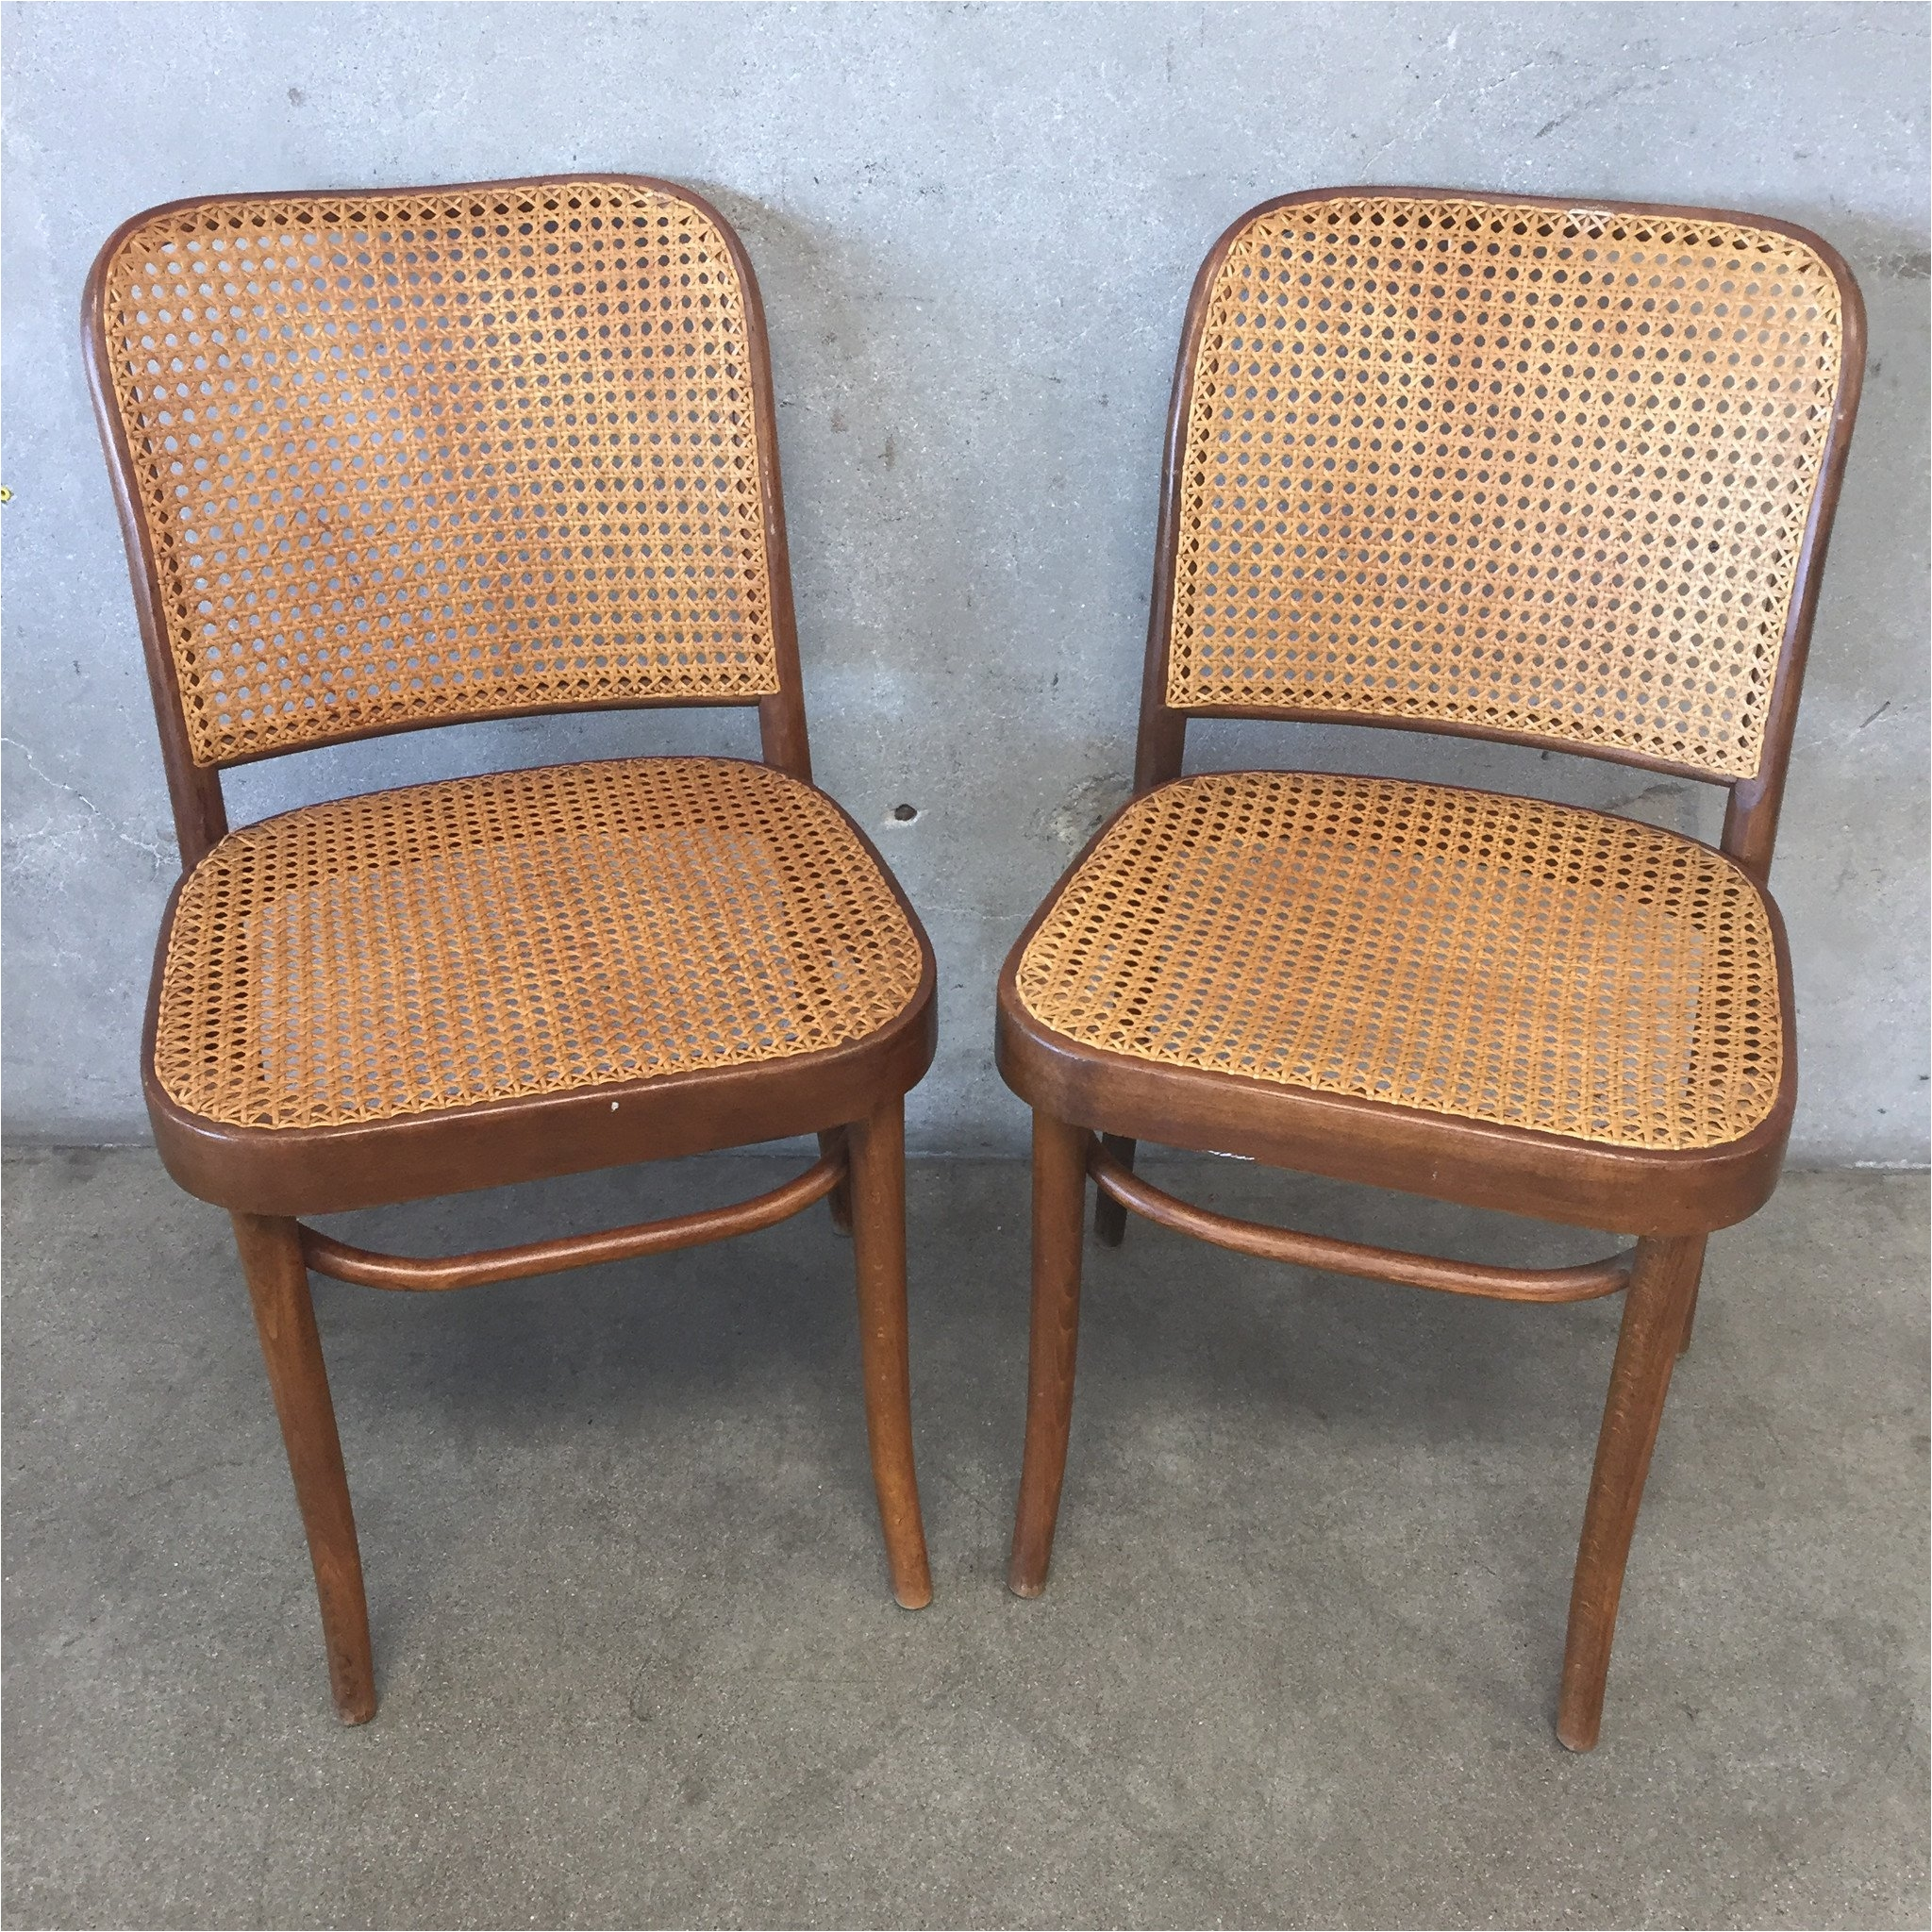 Chair Caning Supplies Nz Chair Cane Back Dining Room Chairs Awesome     Chair Caning Supplies Nz Chair Cane Back Dining Room Chairs Awesome Set  French Of Best